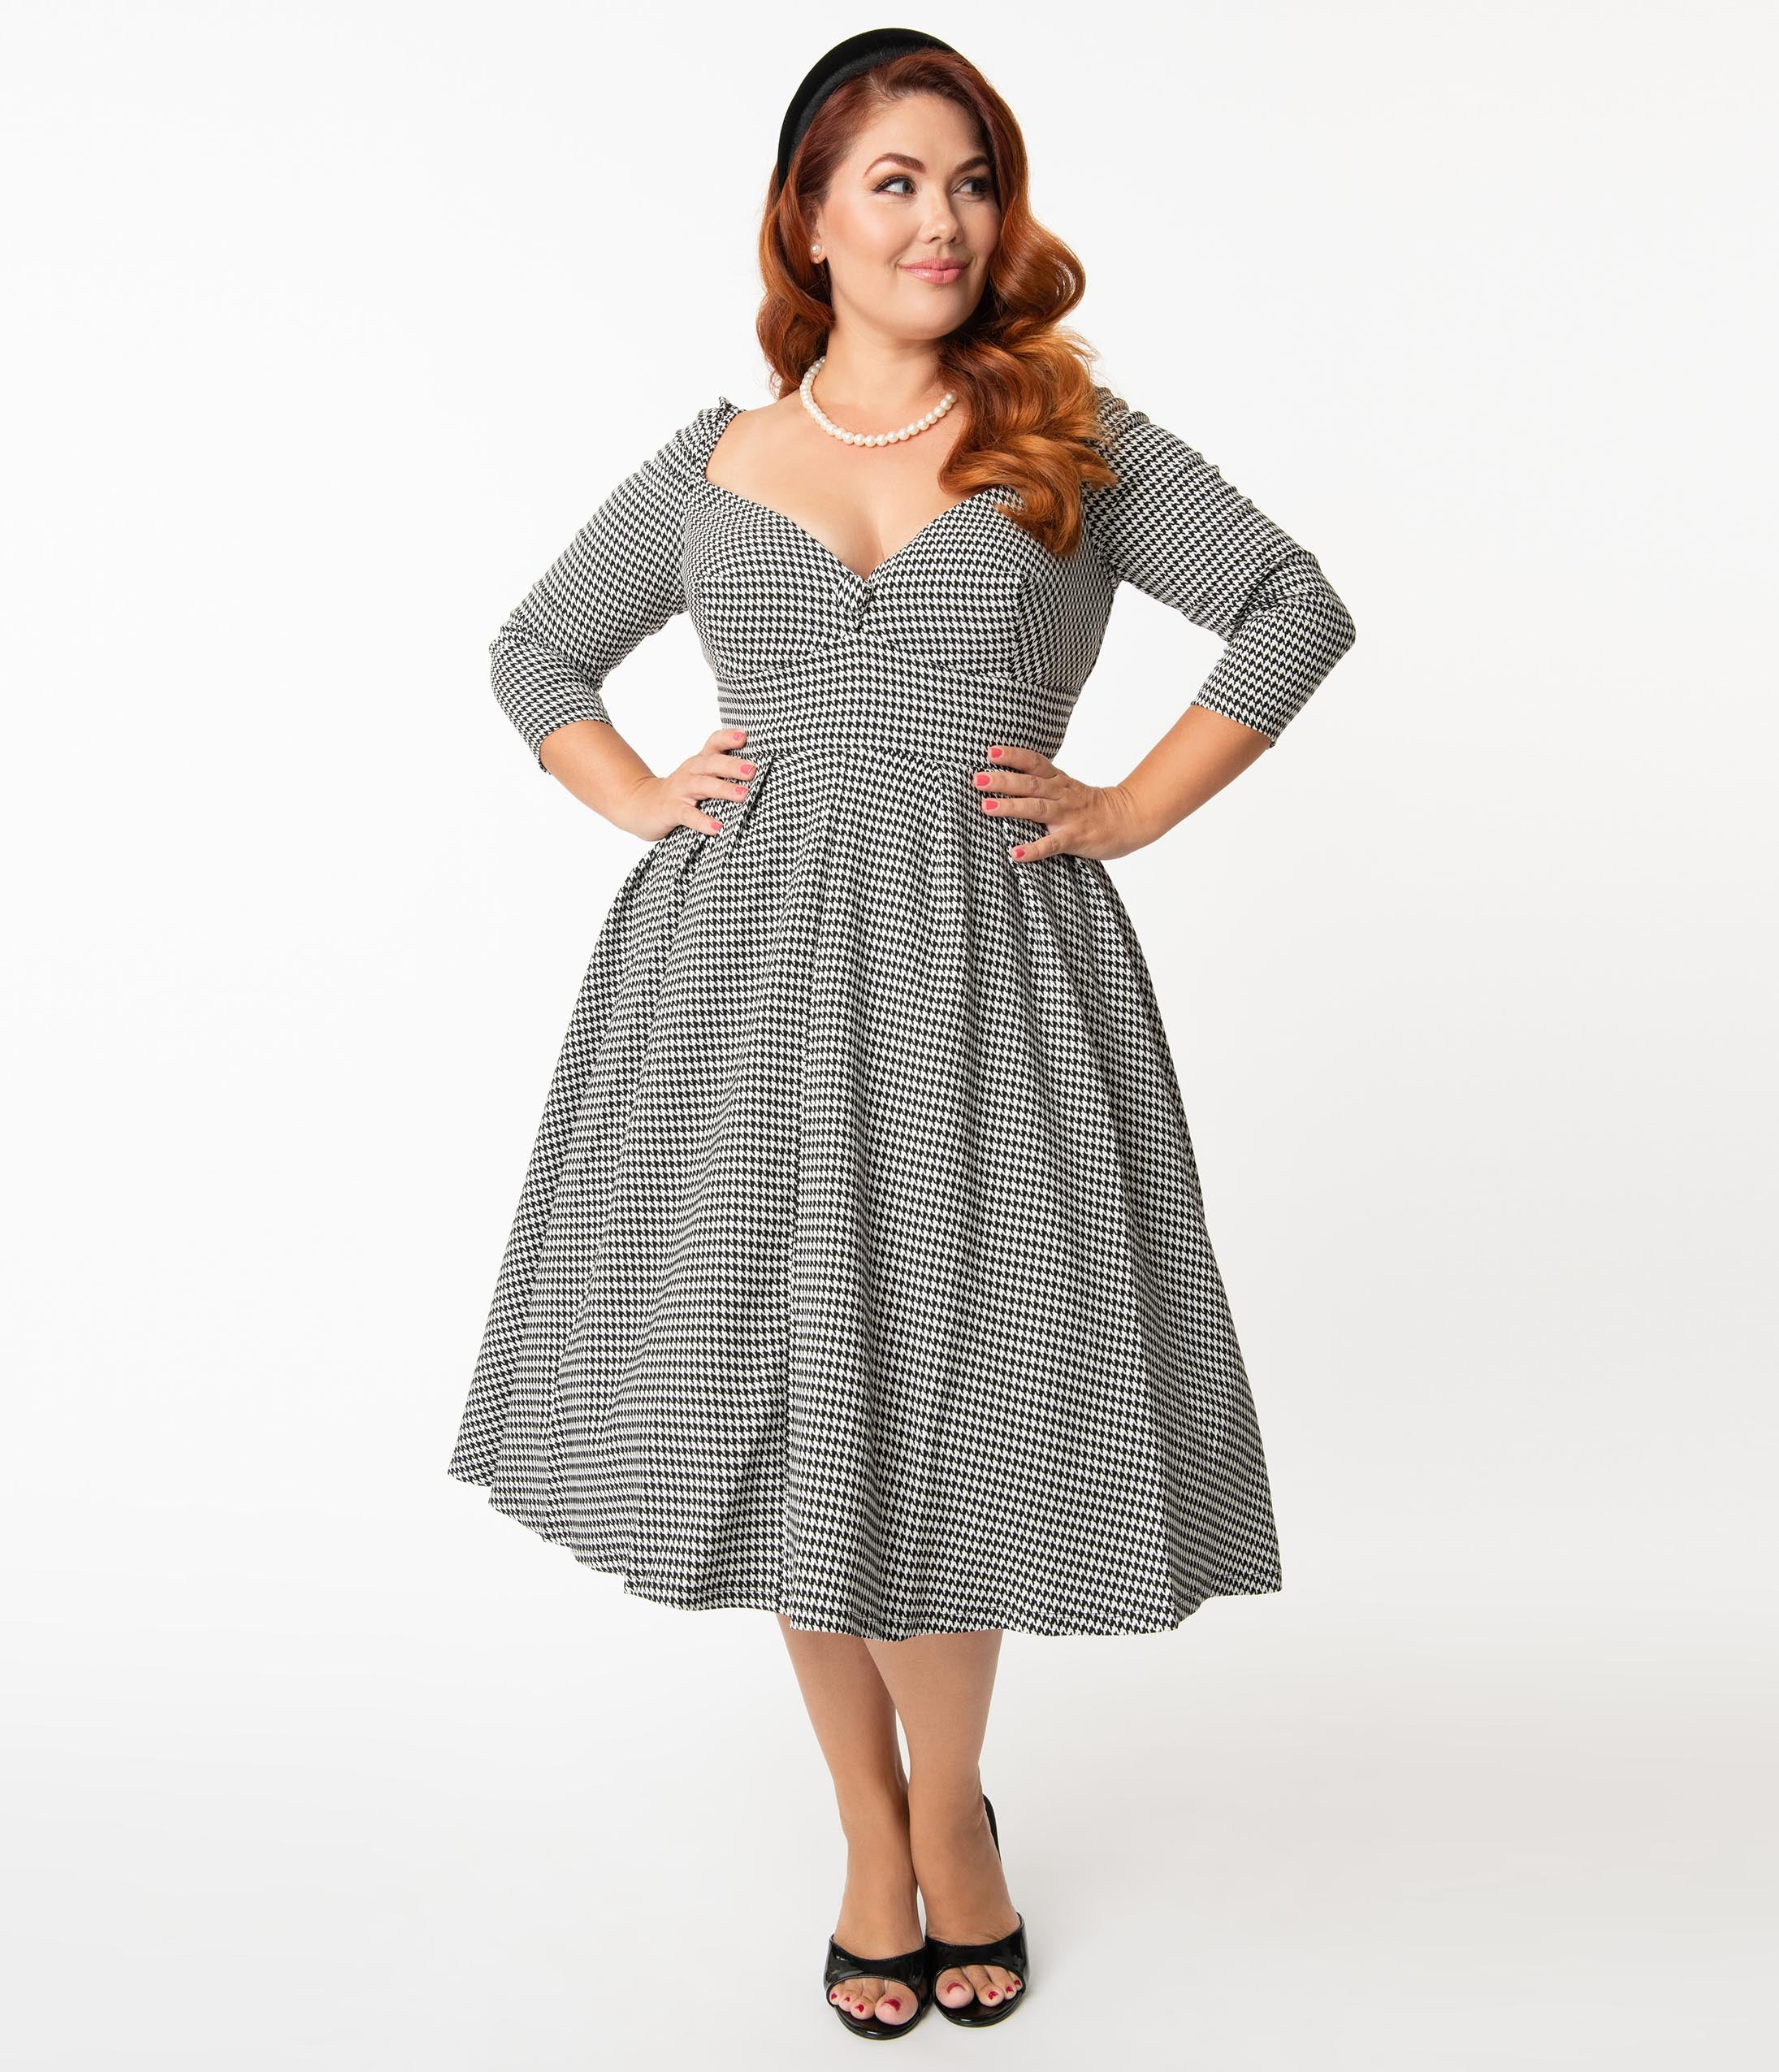 Vintage Style Dresses | Vintage Inspired Dresses Unique Vintage Plus Size Black  White Houndstooth Lamar Swing Dress $98.00 AT vintagedancer.com